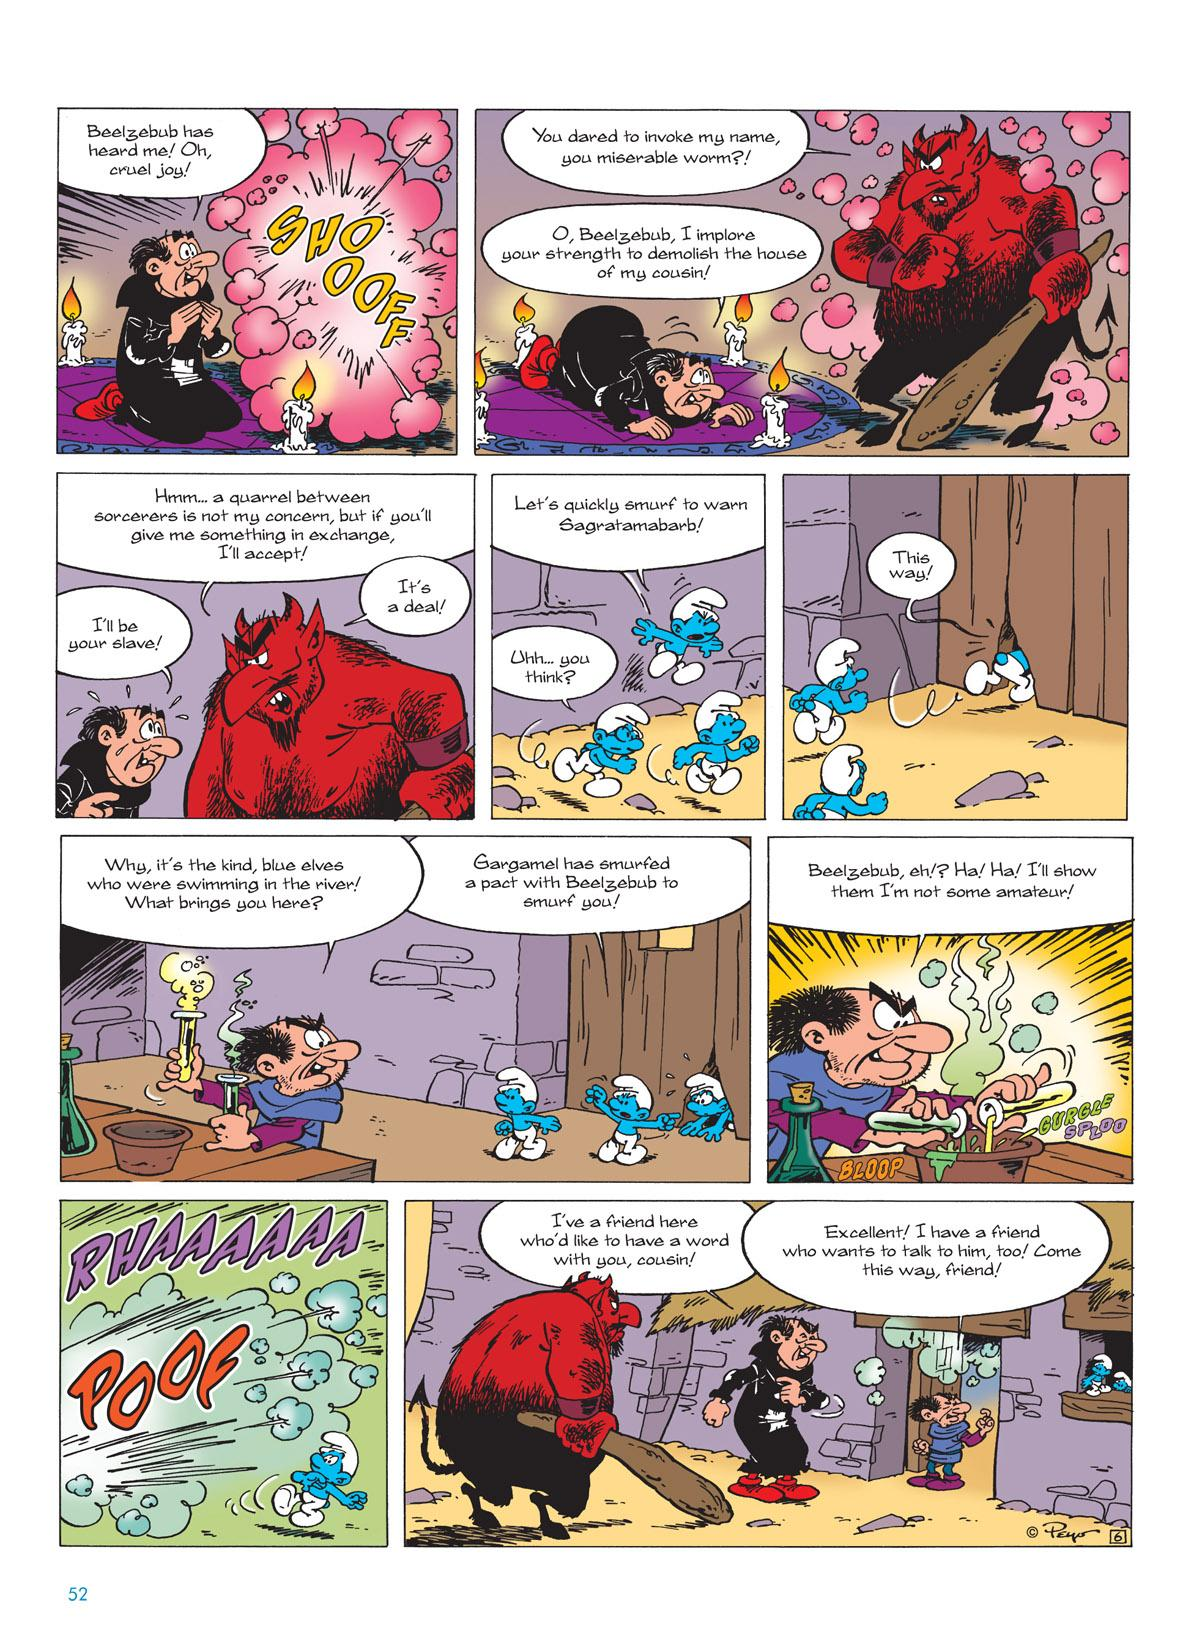 Gargamel and the Smurfs review